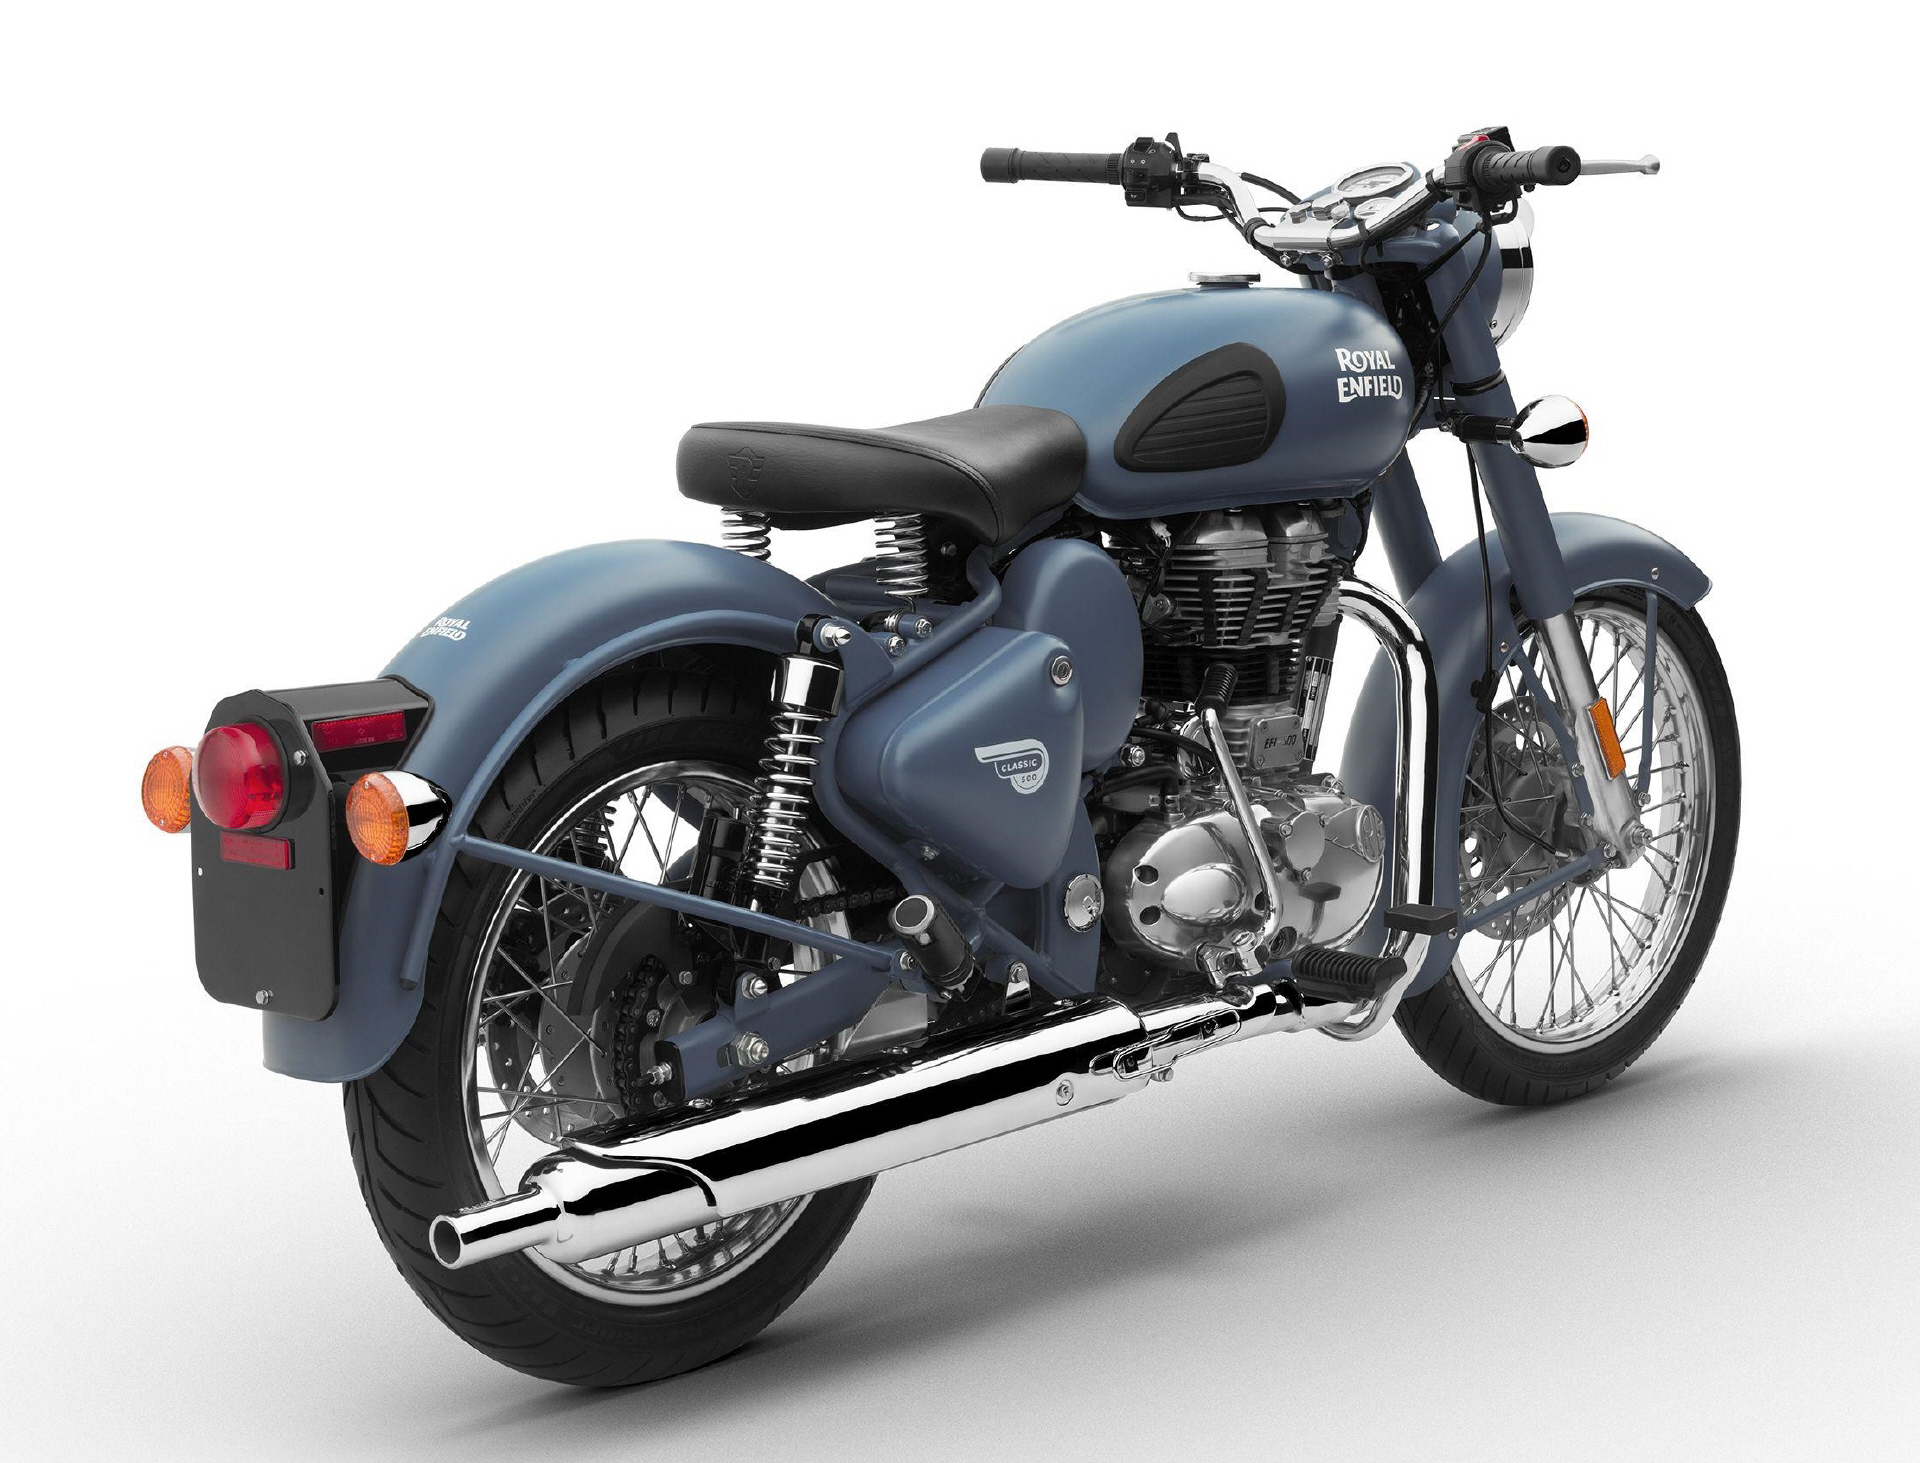 royalenfield_classic_squadronblue_01jpg